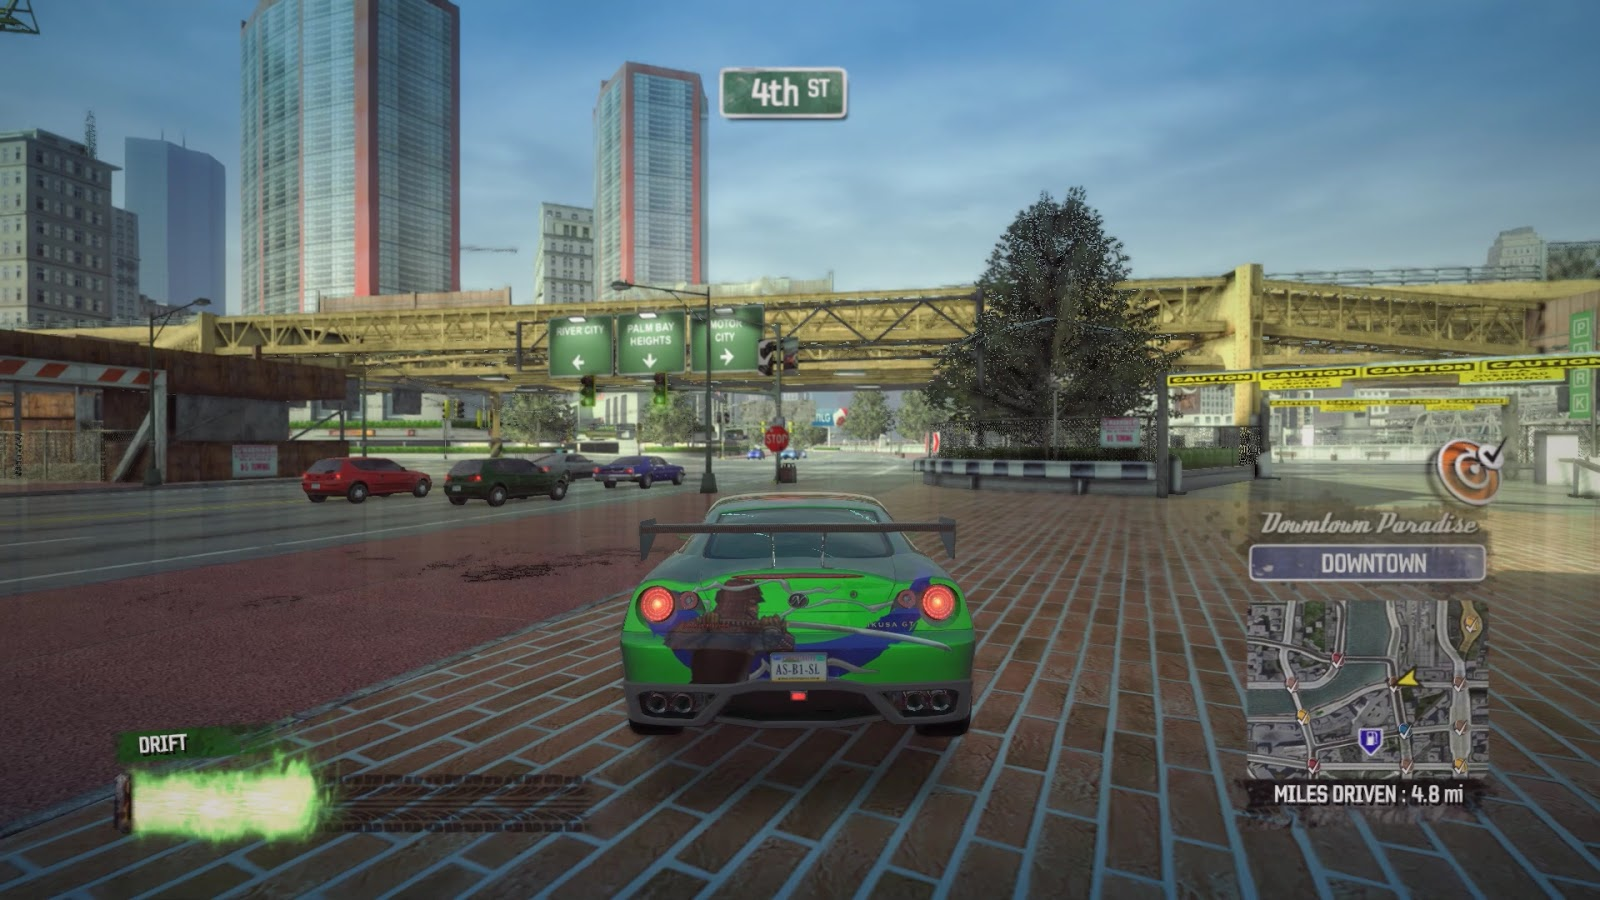 Burnout Paradise Ultra Graphics Mod 2018 | Texture Mod With Reshade